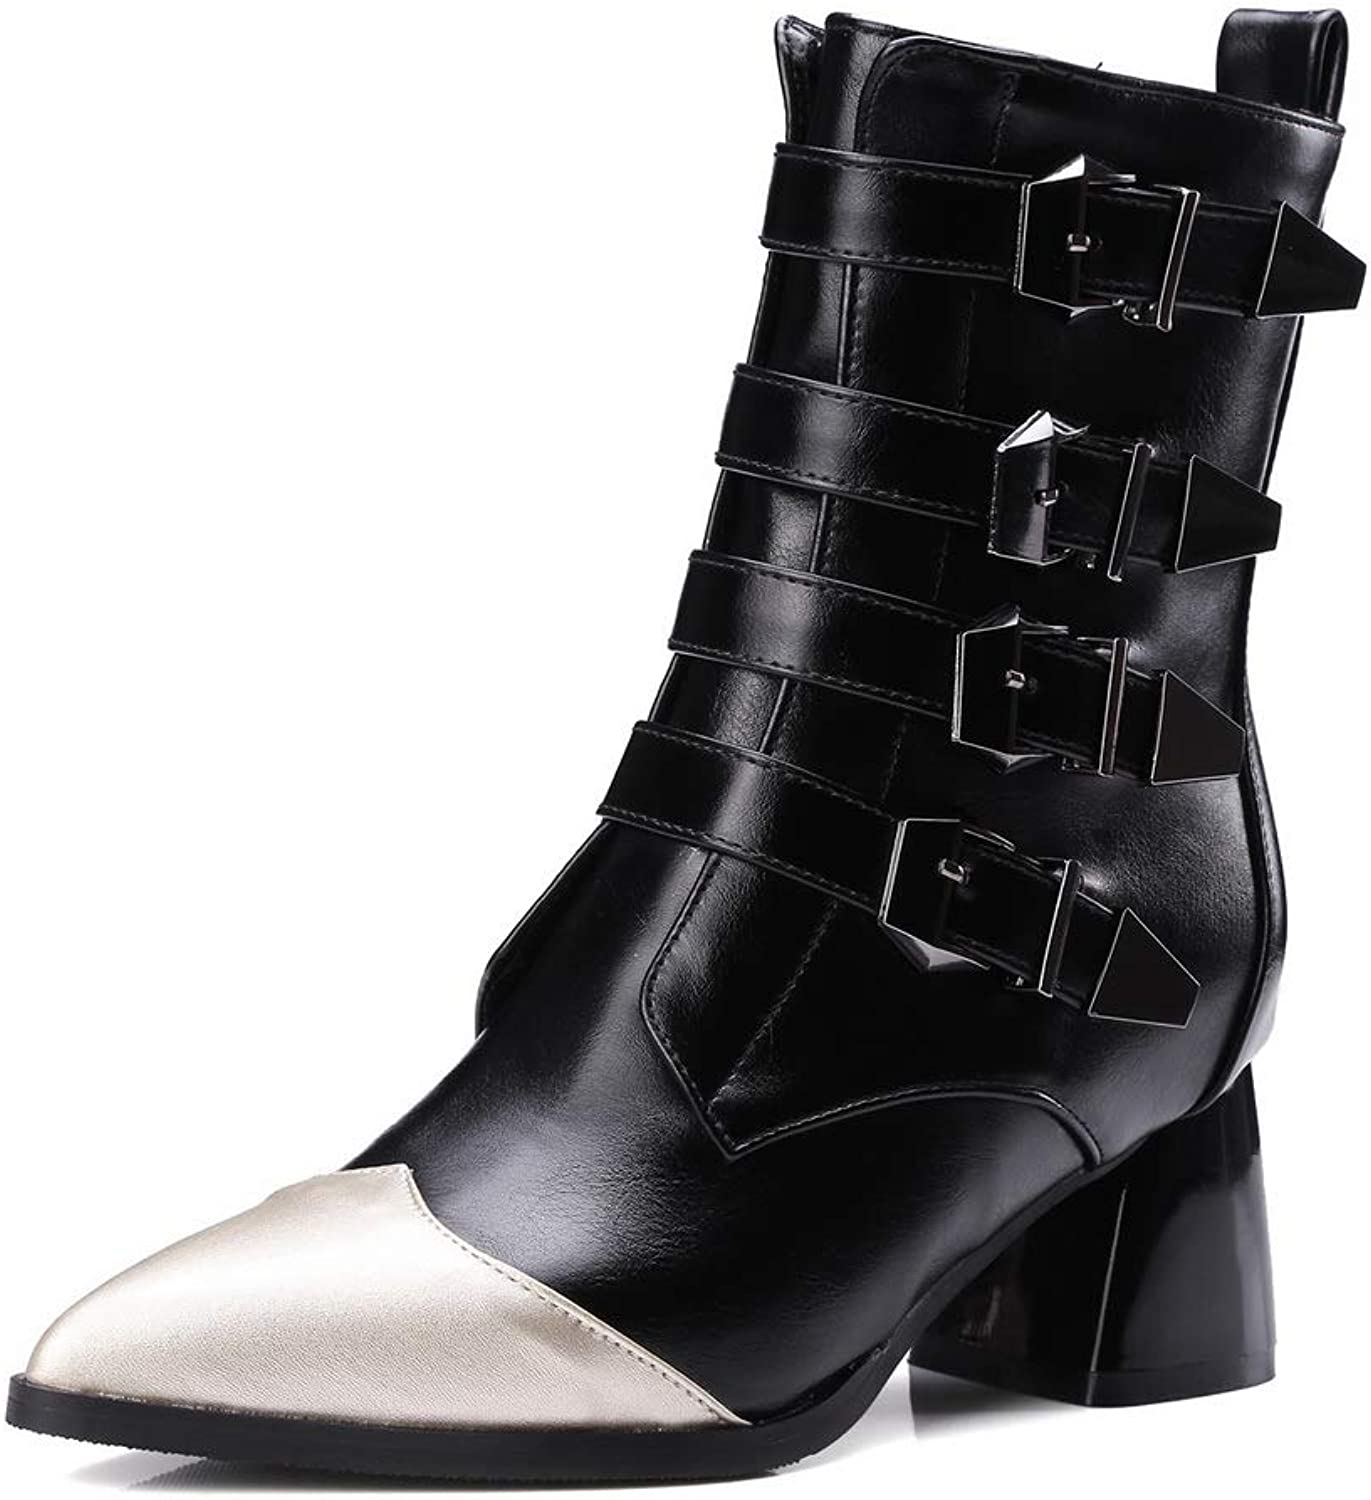 AN Womens Chunky Heels Metal Buckles Pointed-Toe Assorted colors Urethane Boots DKU02398